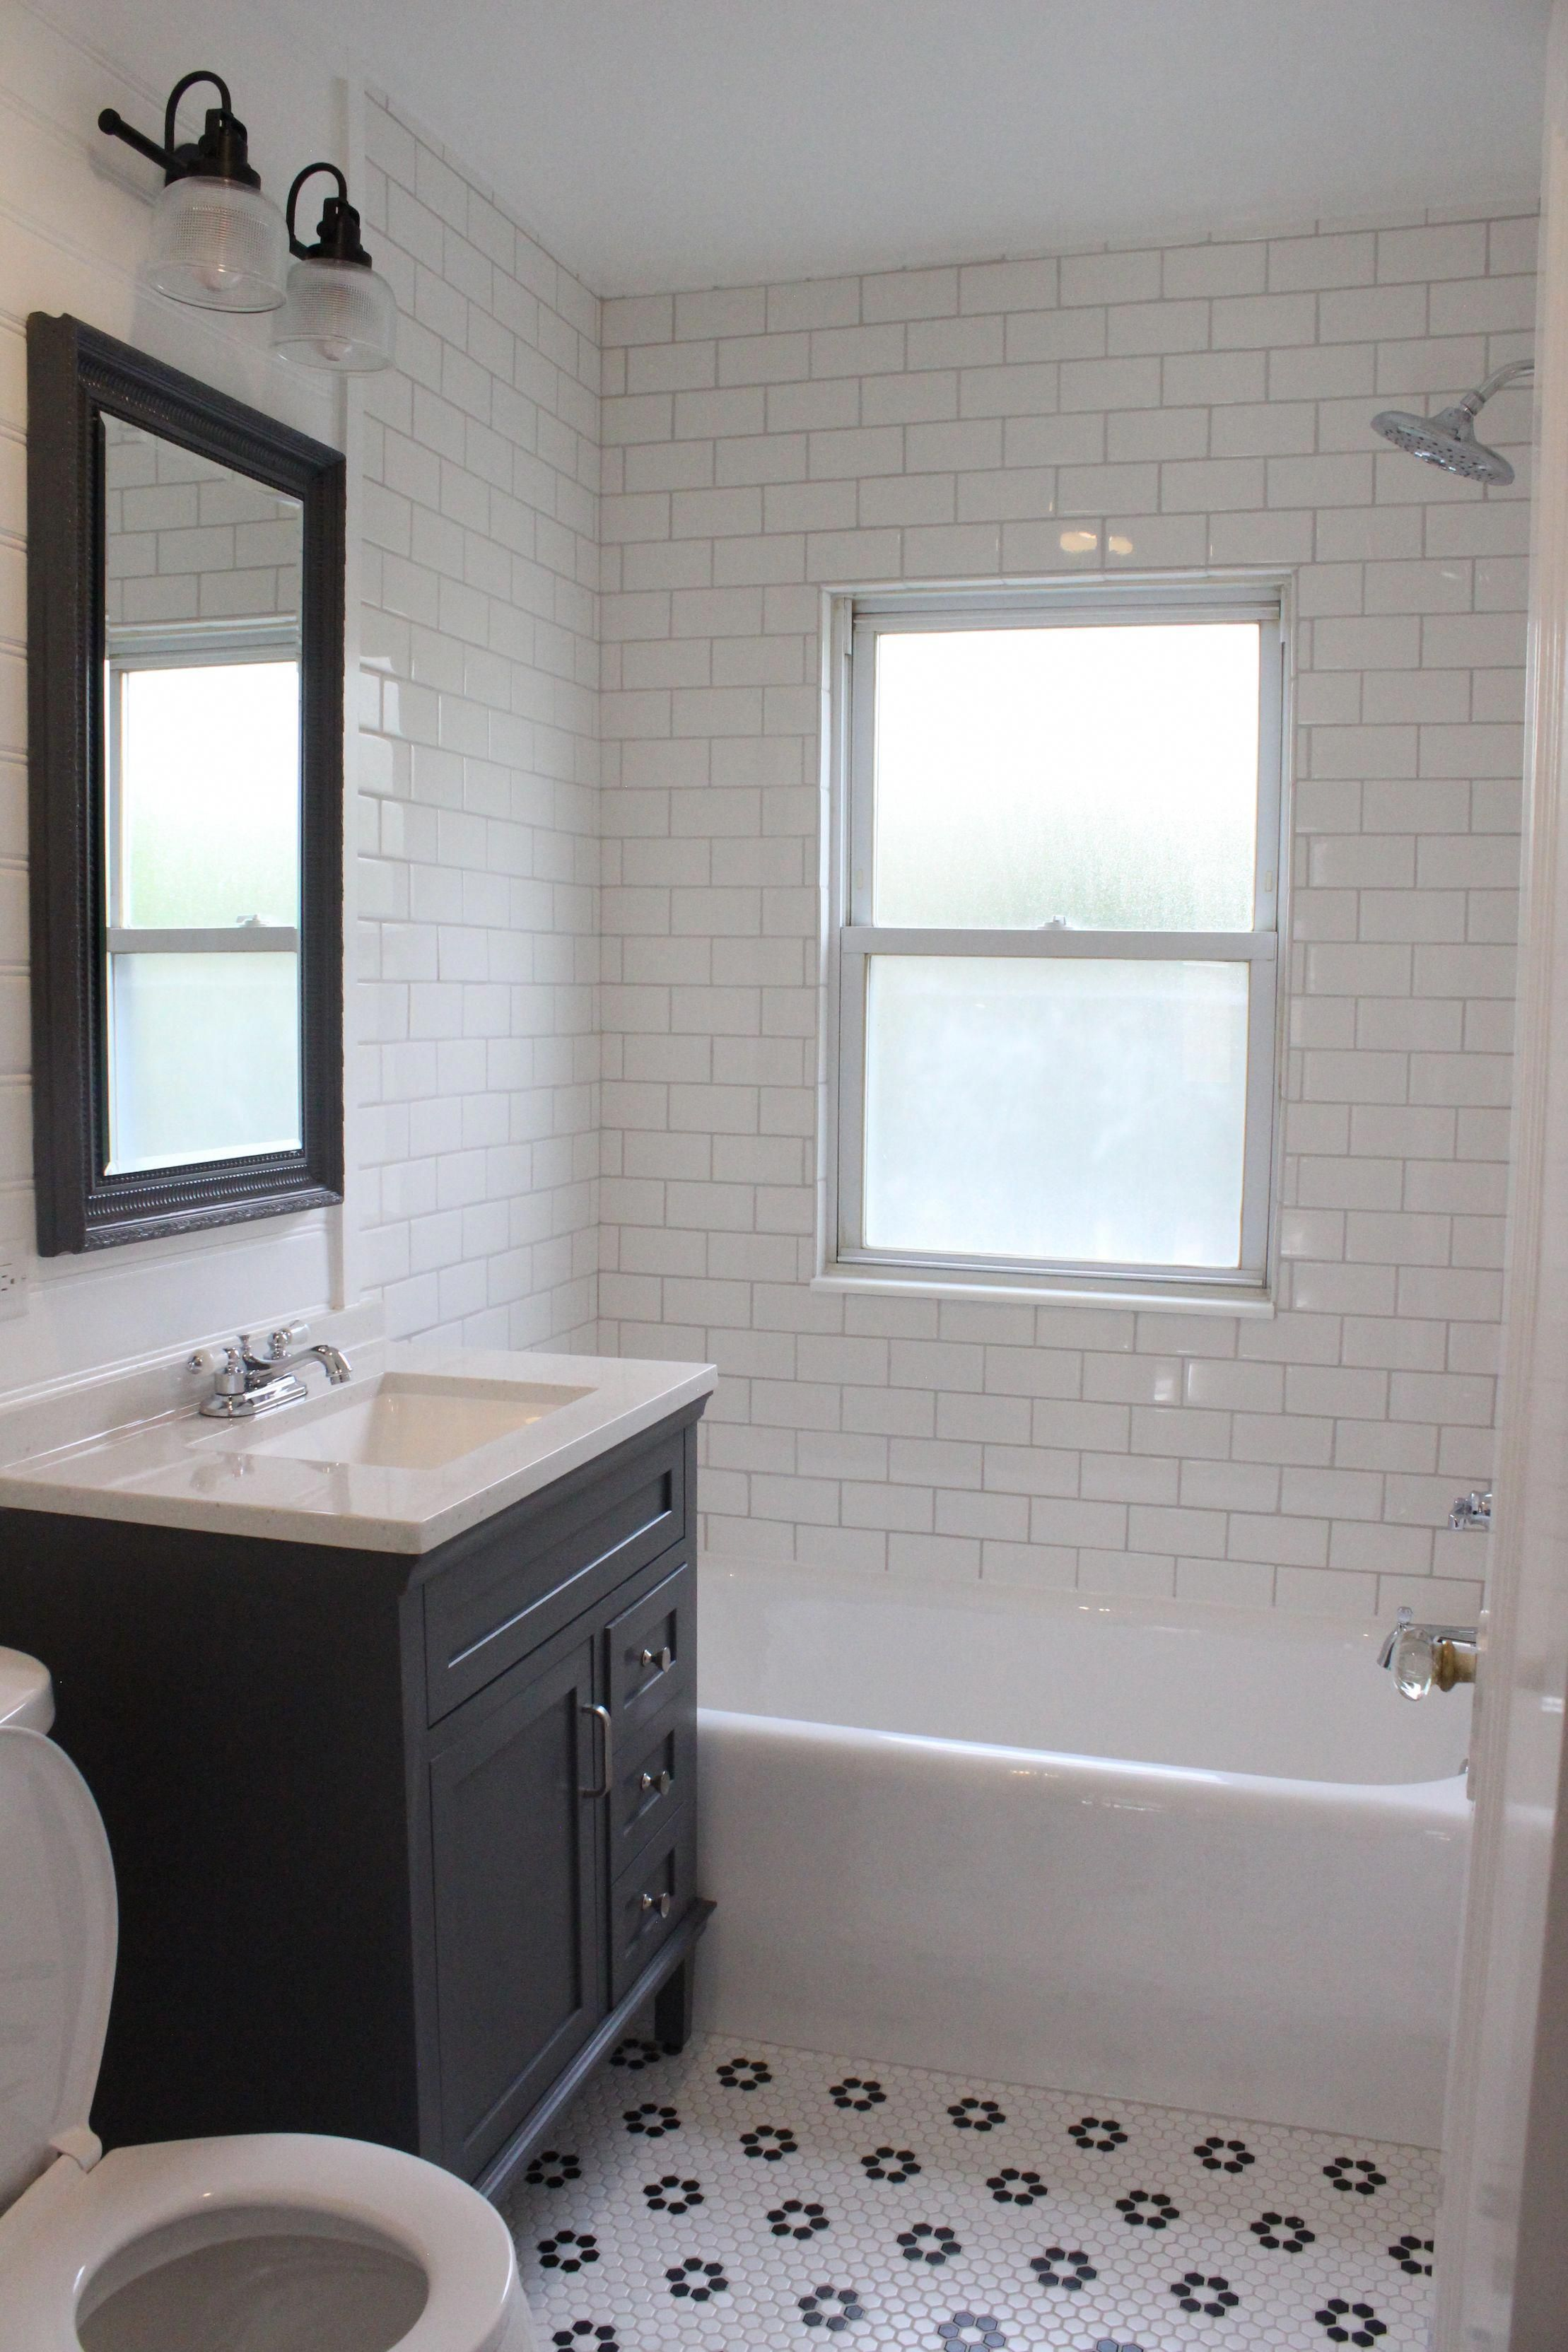 If You Are Planning On Having An Expert Install Your New Bath Tub